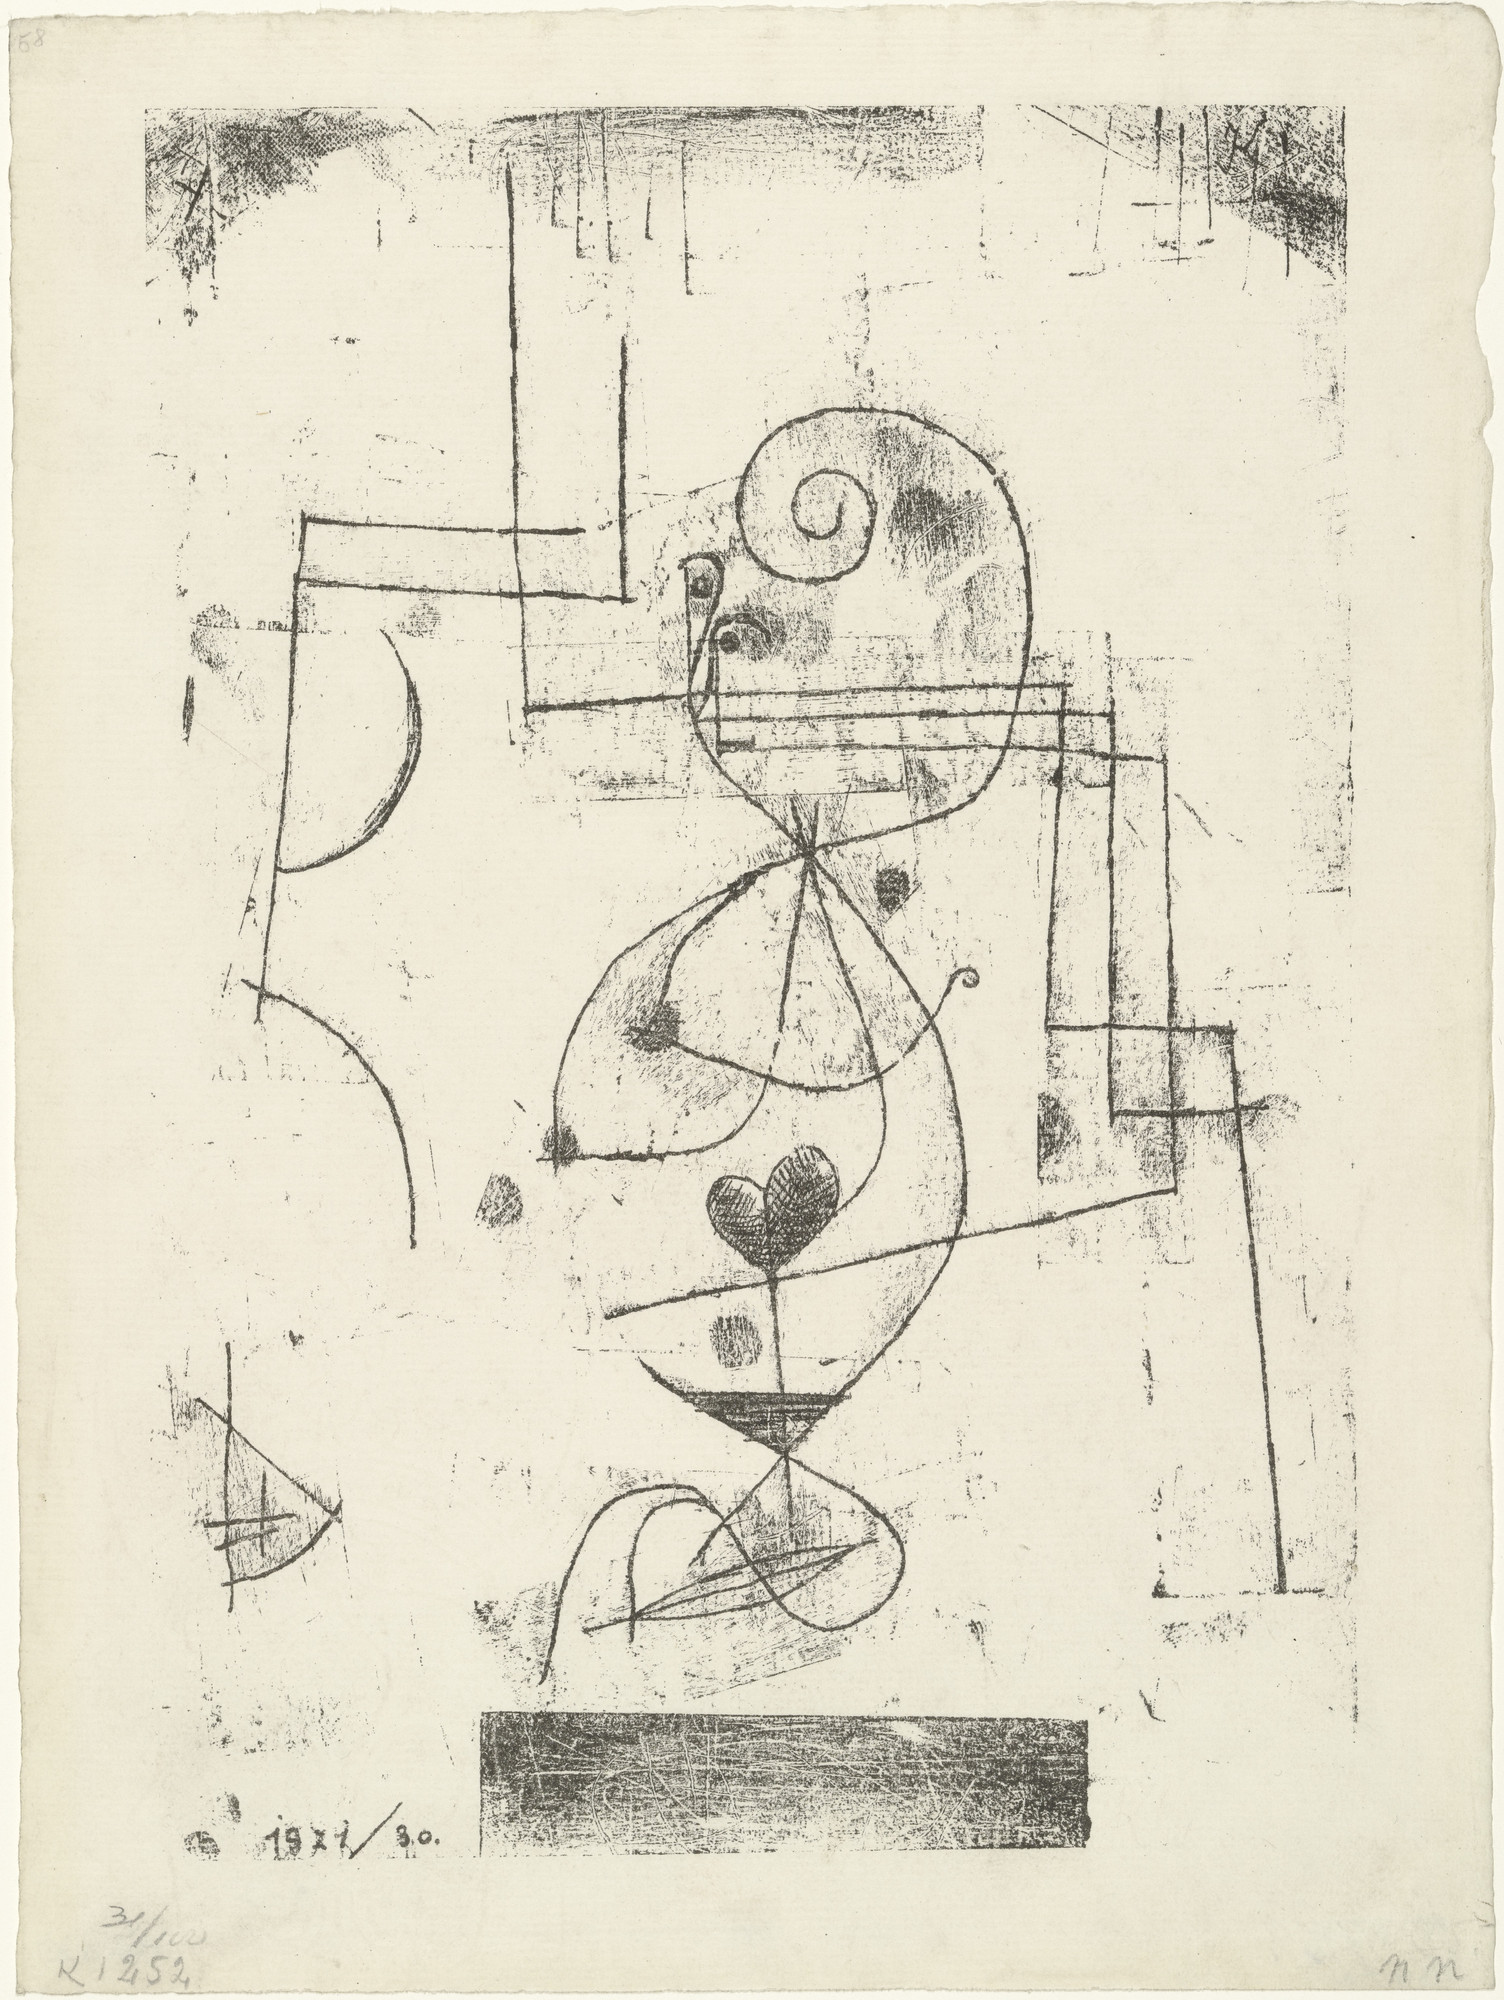 Paul Klee. Queen of Hearts (Herzdame) from the periodical Der Ararat. Glossen, Skizzen und Notizen zur Neuen Kunst vol. 2, no. 4 (April 1921). 1921